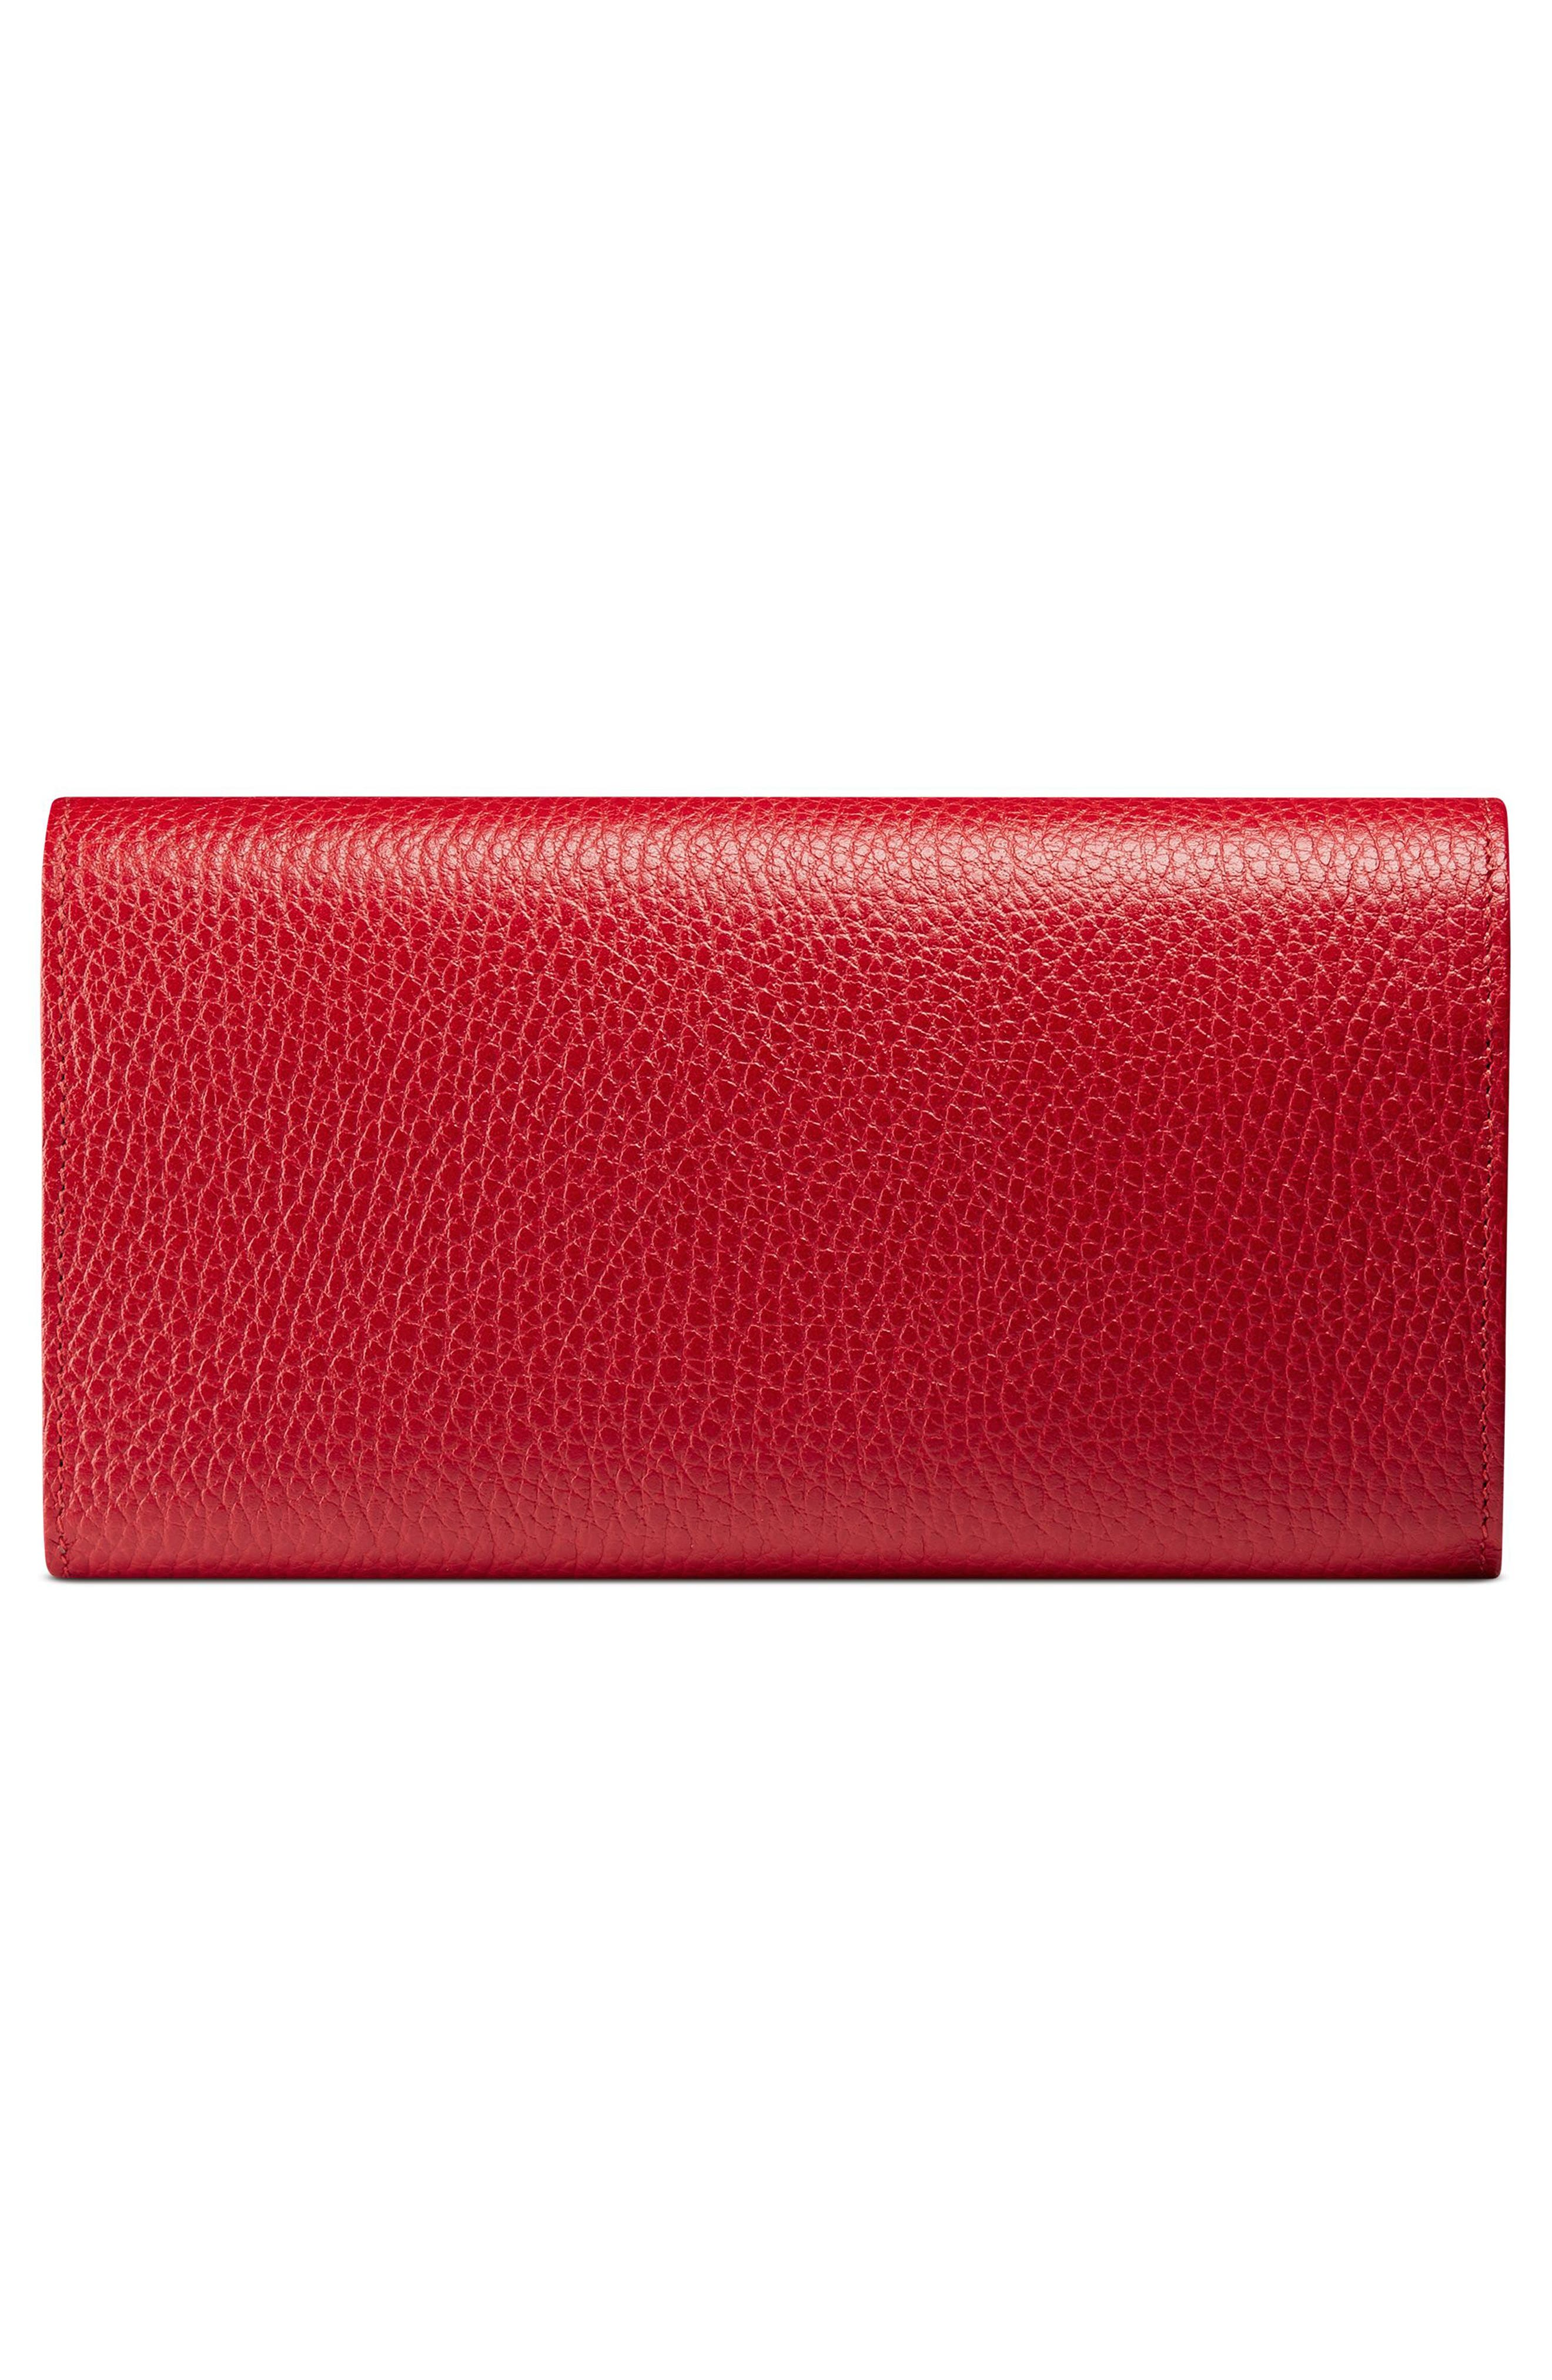 GUCCI, Petite Marmont Leather Continental Wallet, Alternate thumbnail 3, color, 625